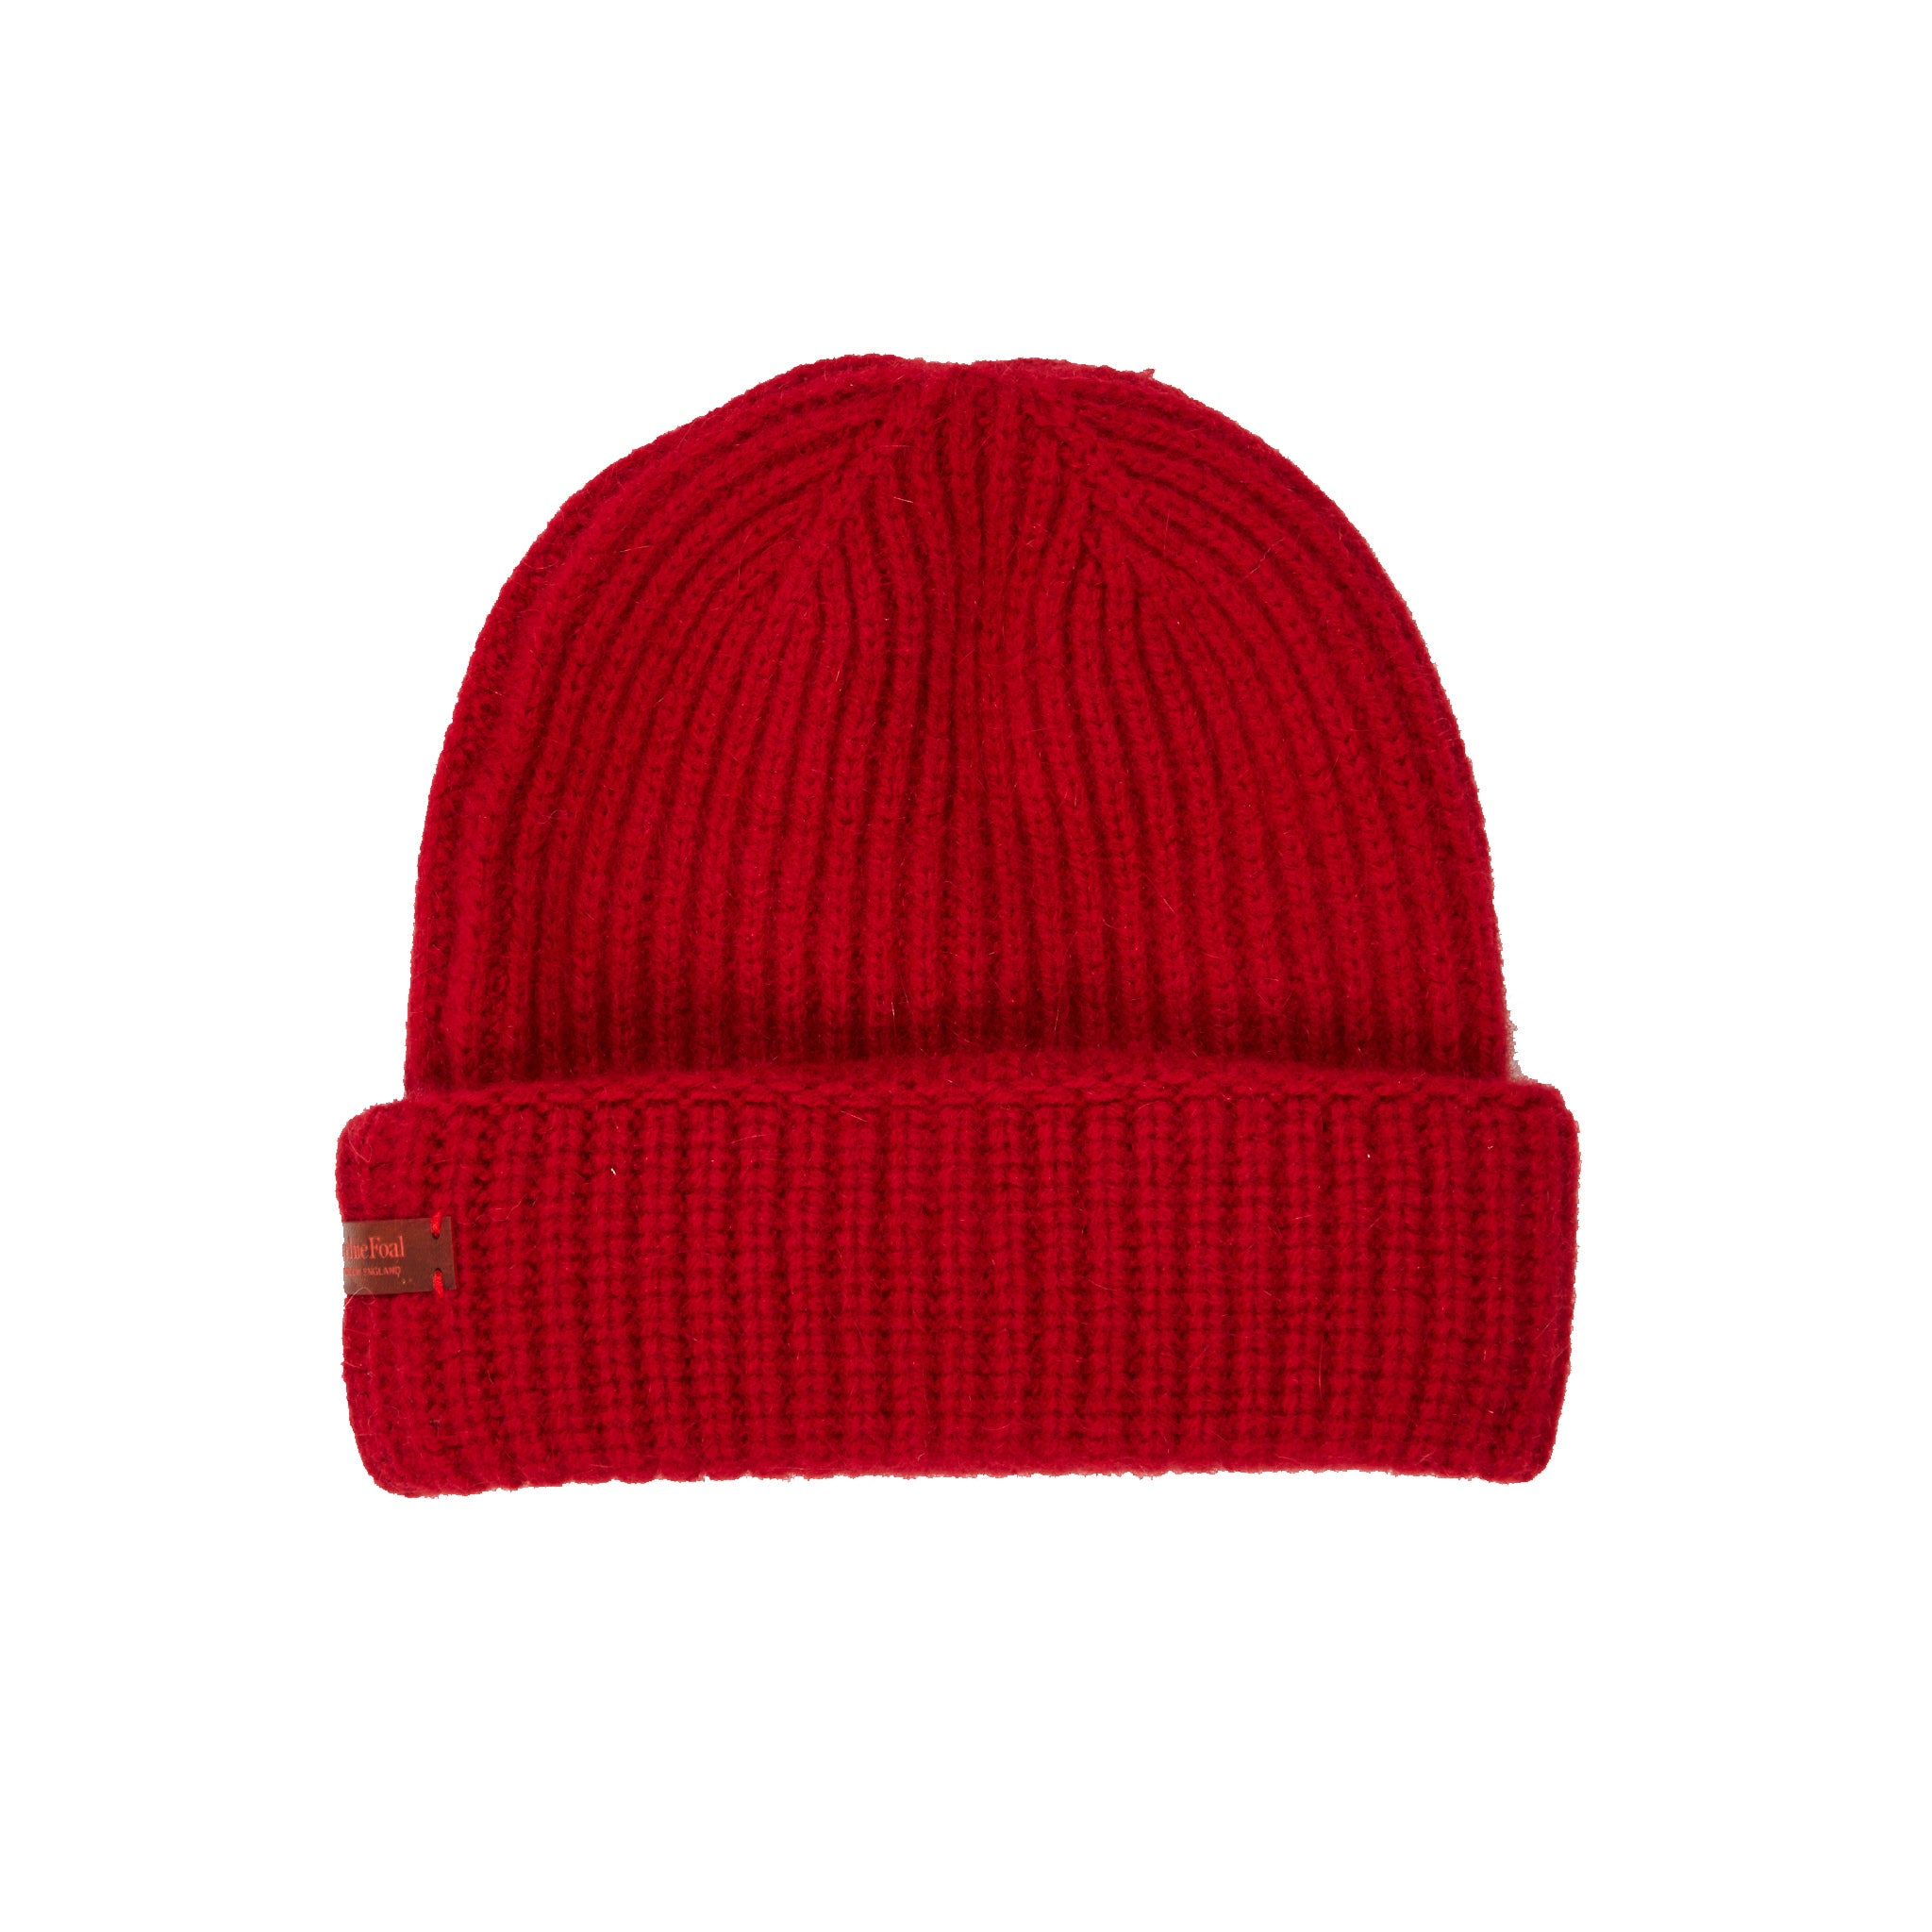 c7ed198f2b4 Archie Foal Unisex Kade Ribbed Beanie Hat in Red